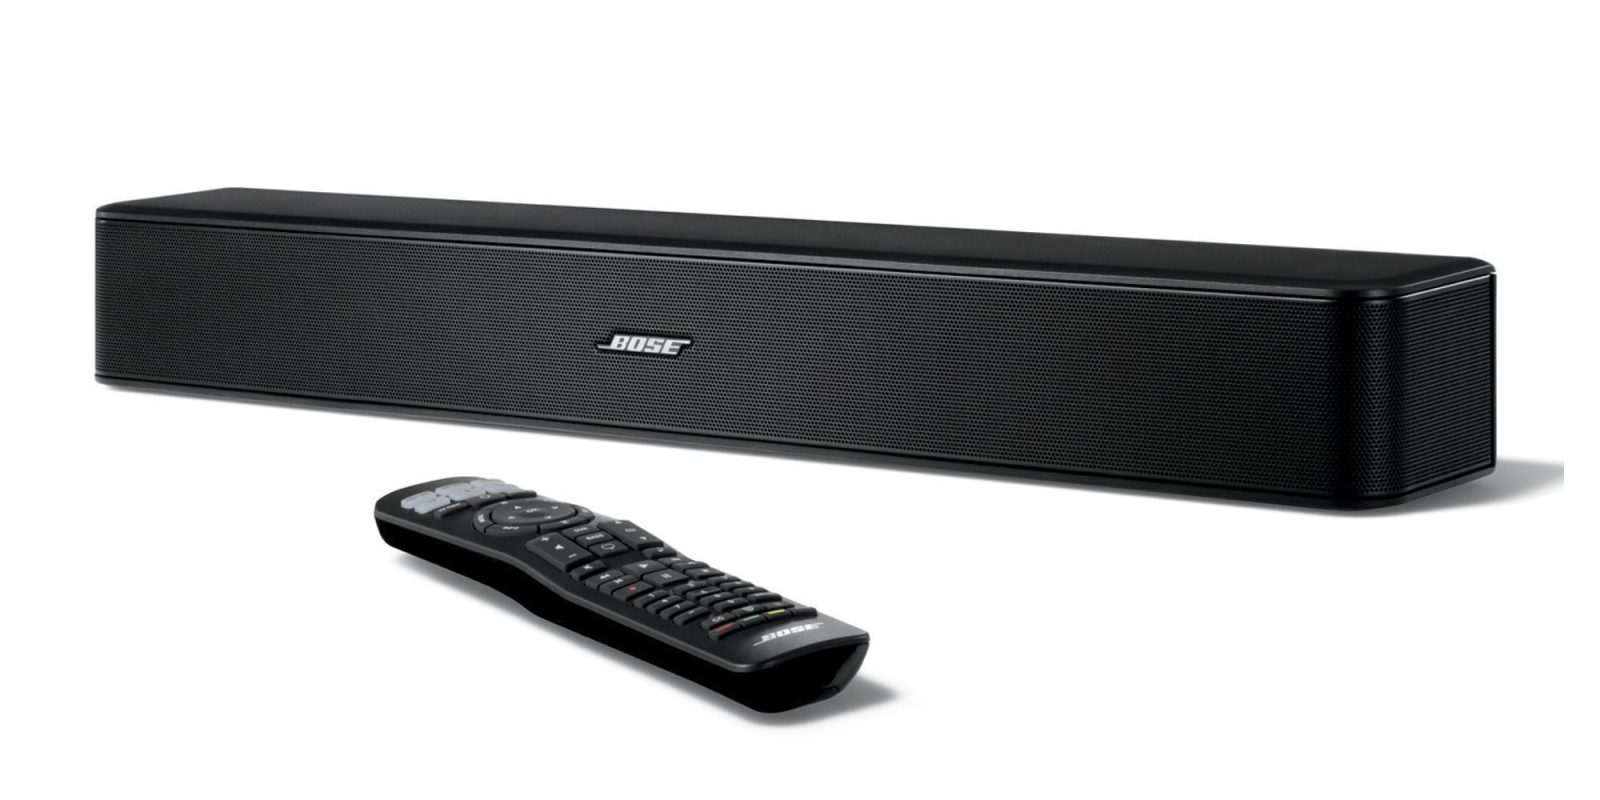 Score the Bose Solo 5 TV Sound System at just $99 (Cert. Refurb, Orig. $249)